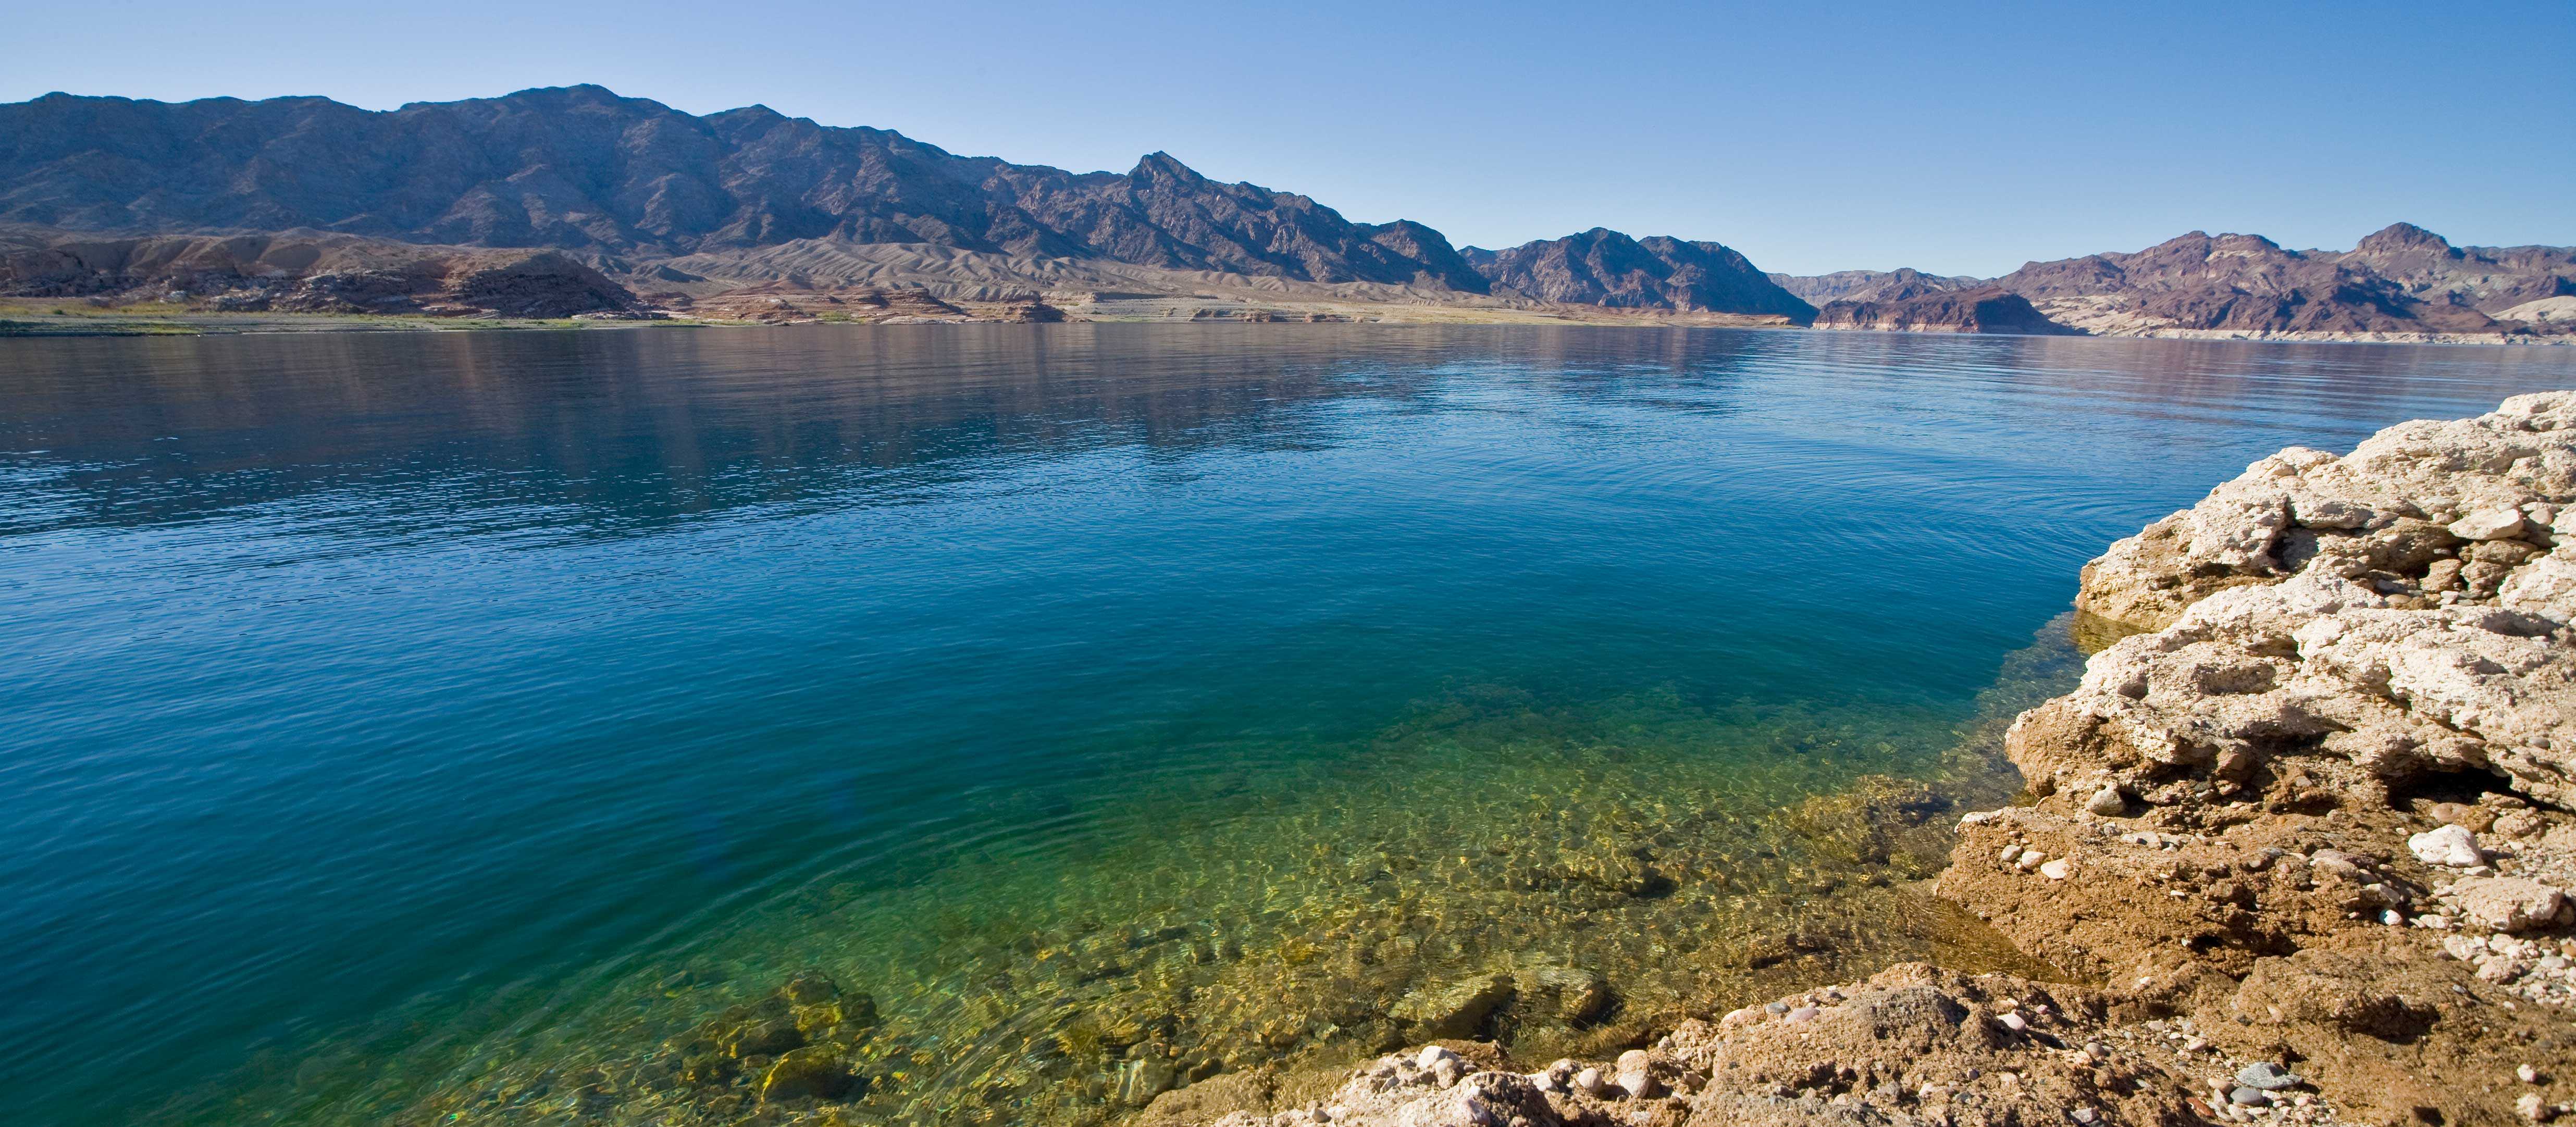 Blue-green waters of Lake Mead with mountains in the background.